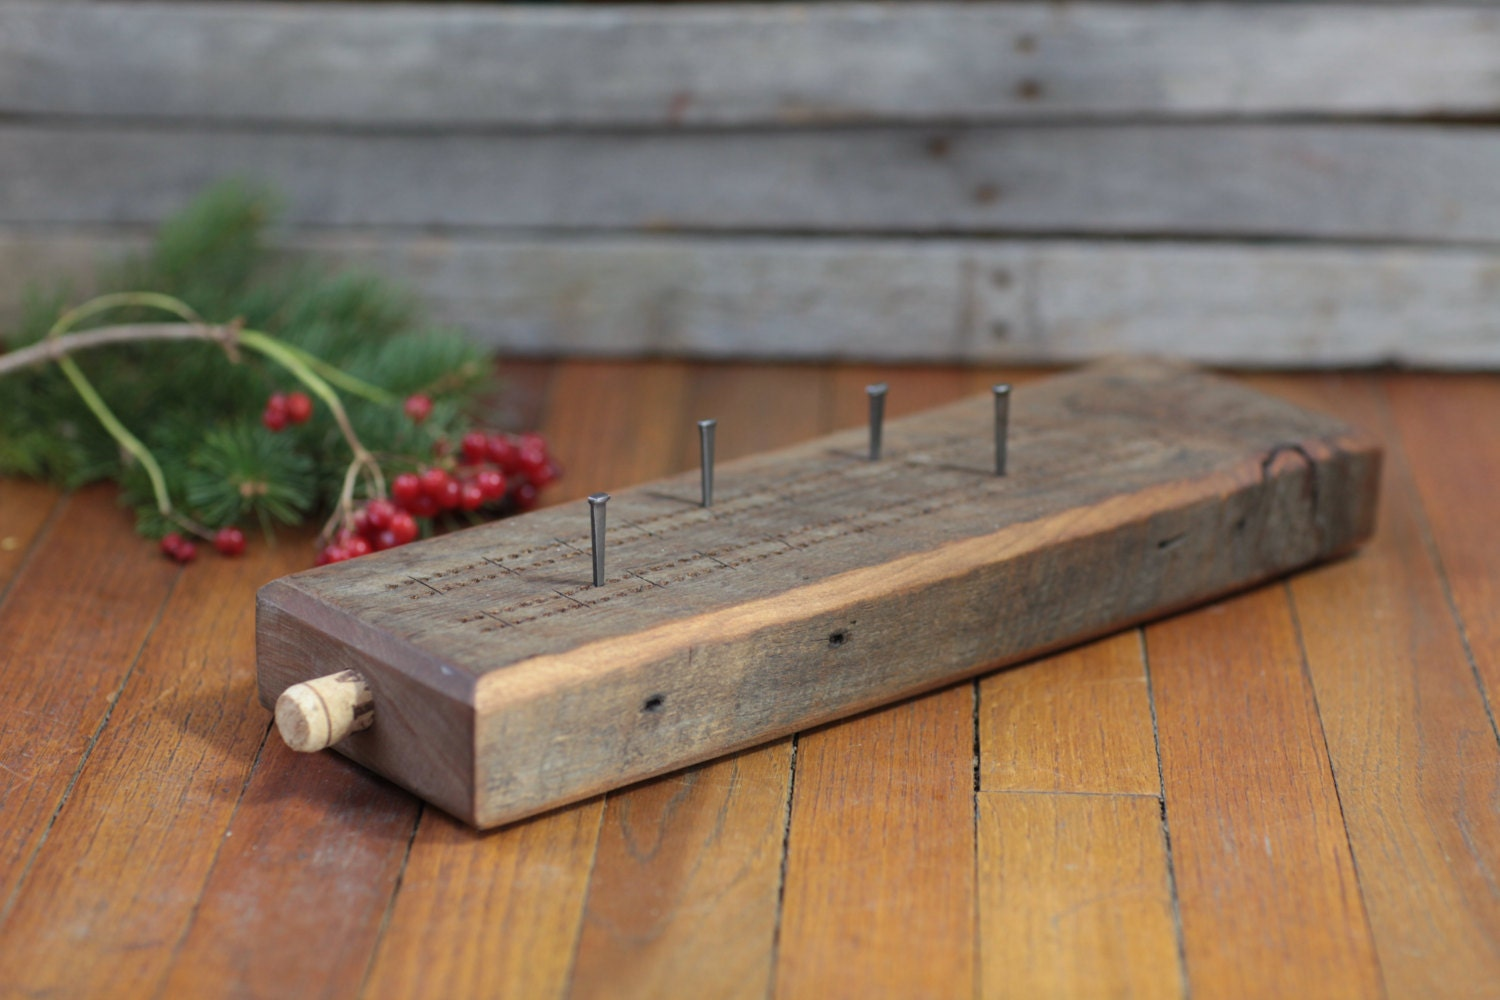 Crib boards for sale uk - Cribbage Board Reclaimed Barn Wood Oil Rubbed Option To Have Woodburned